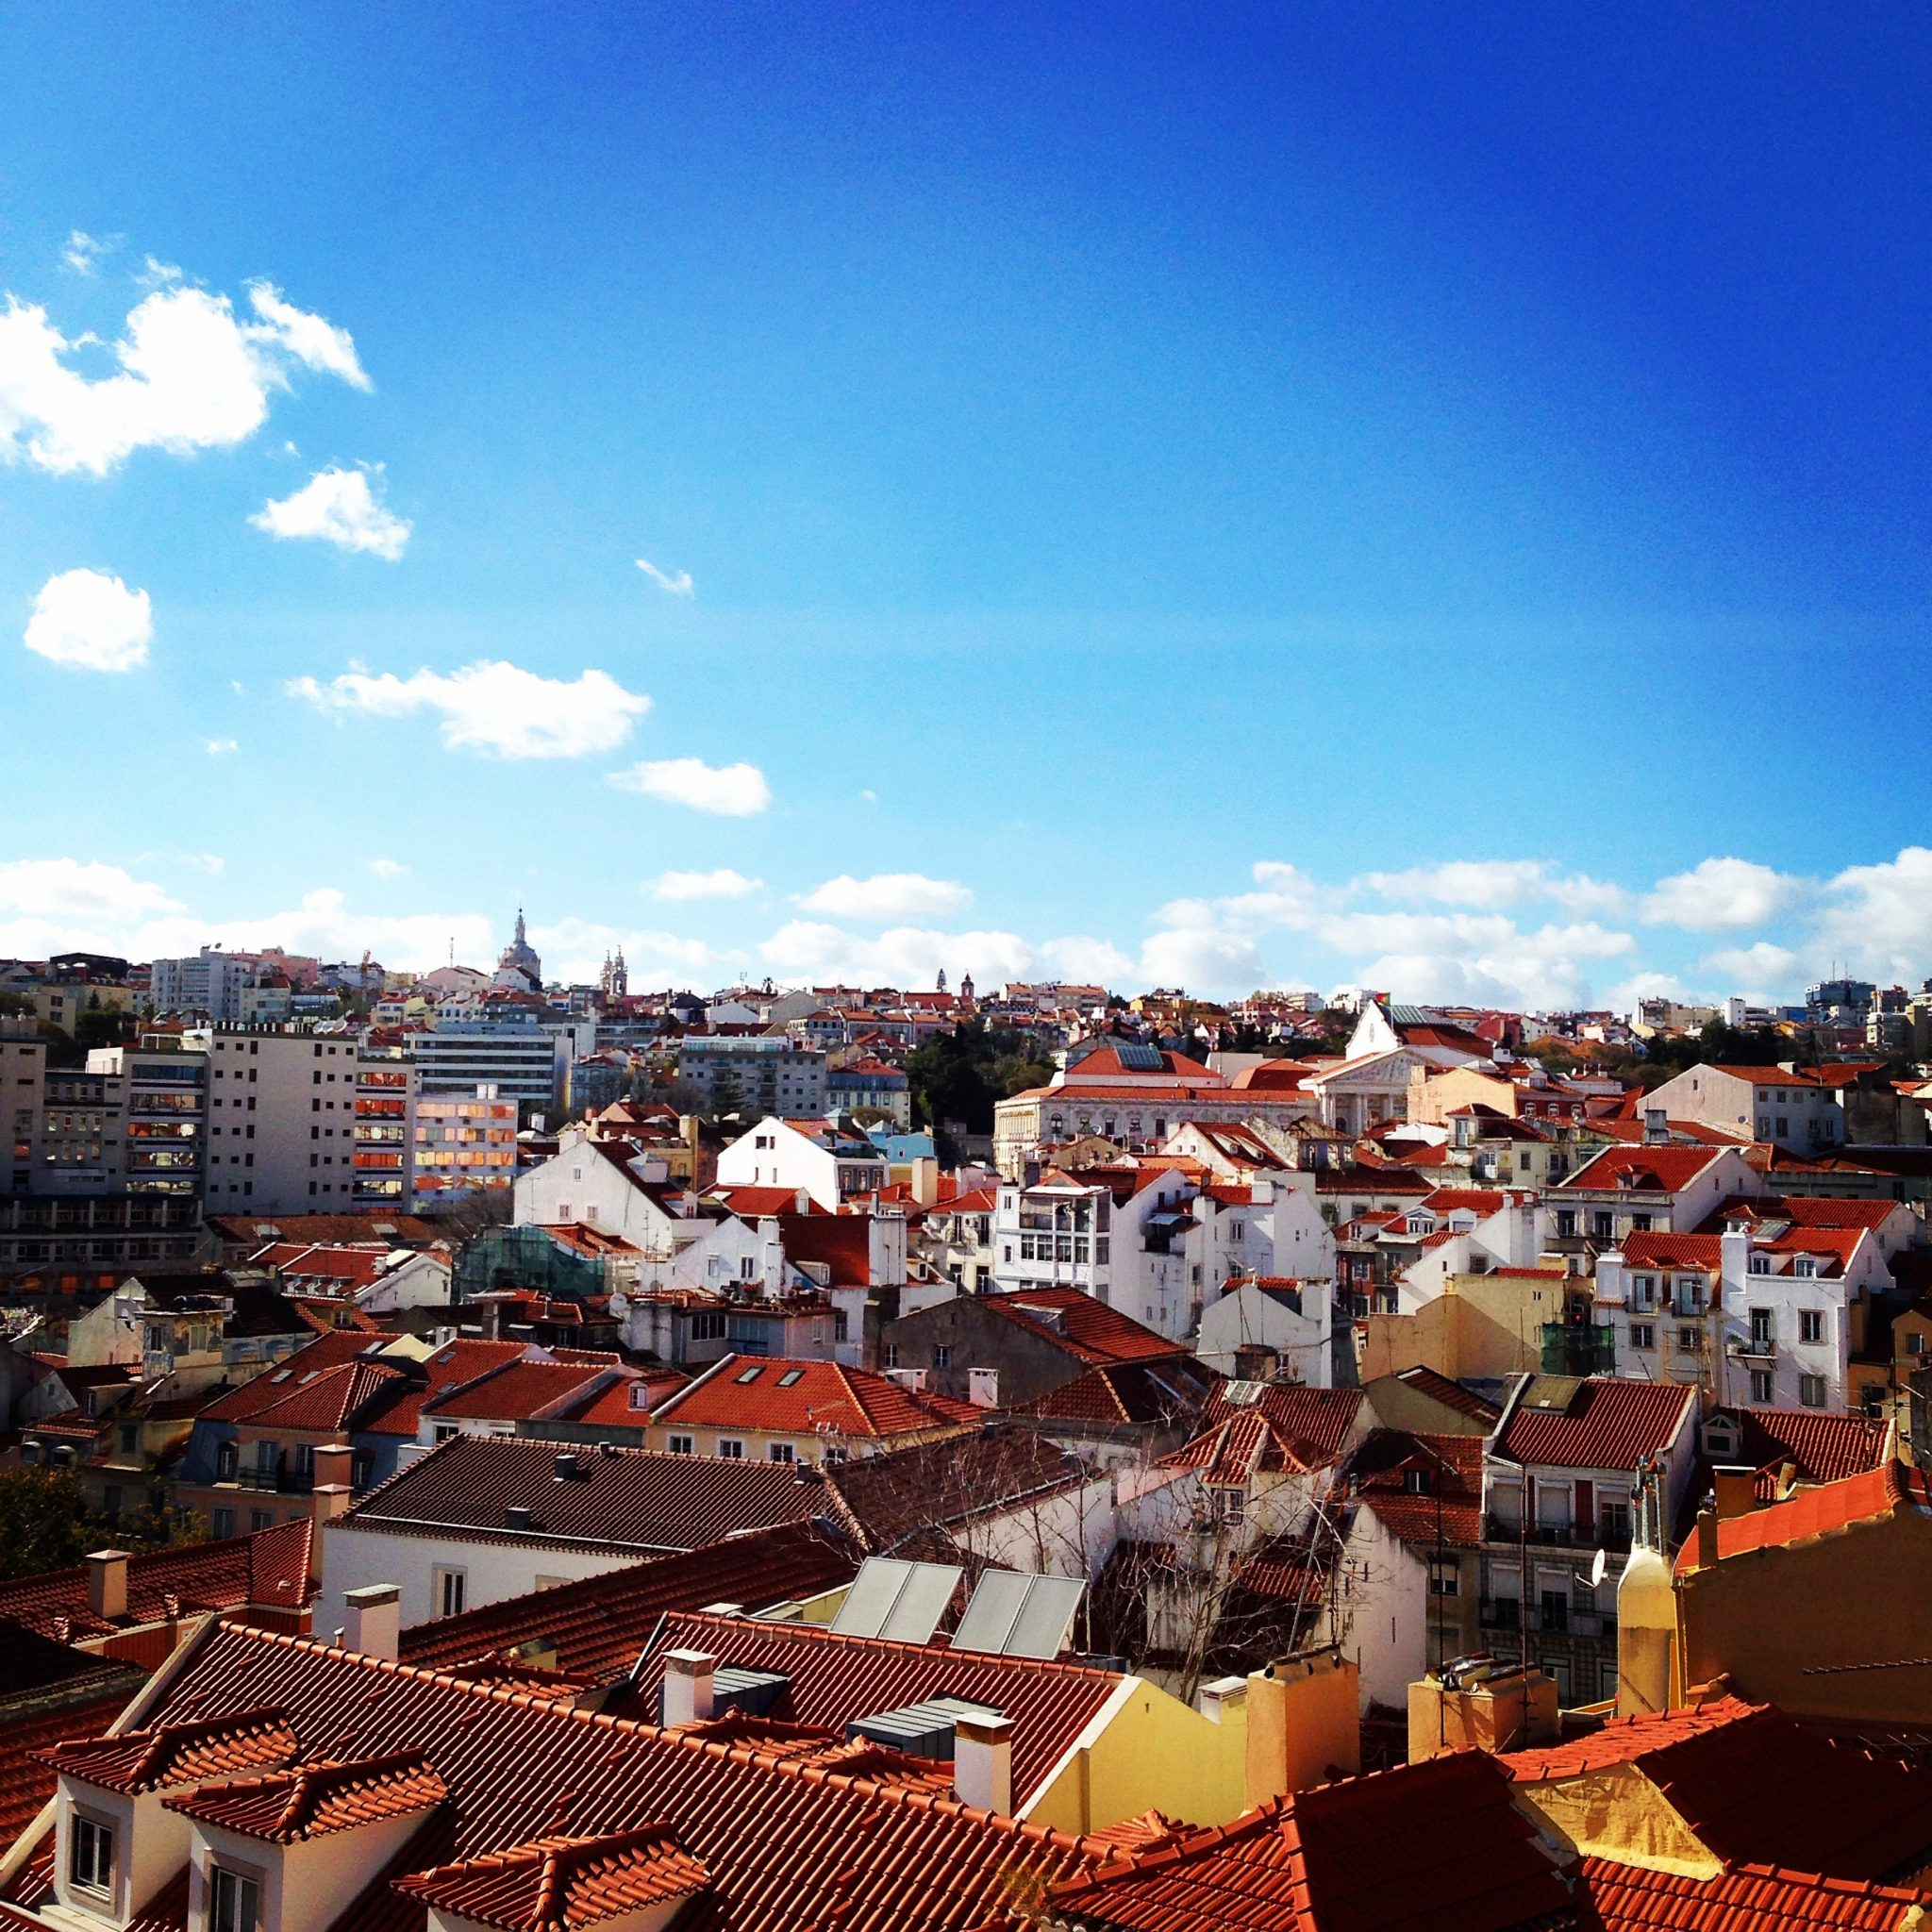 The roofs of Lisbon